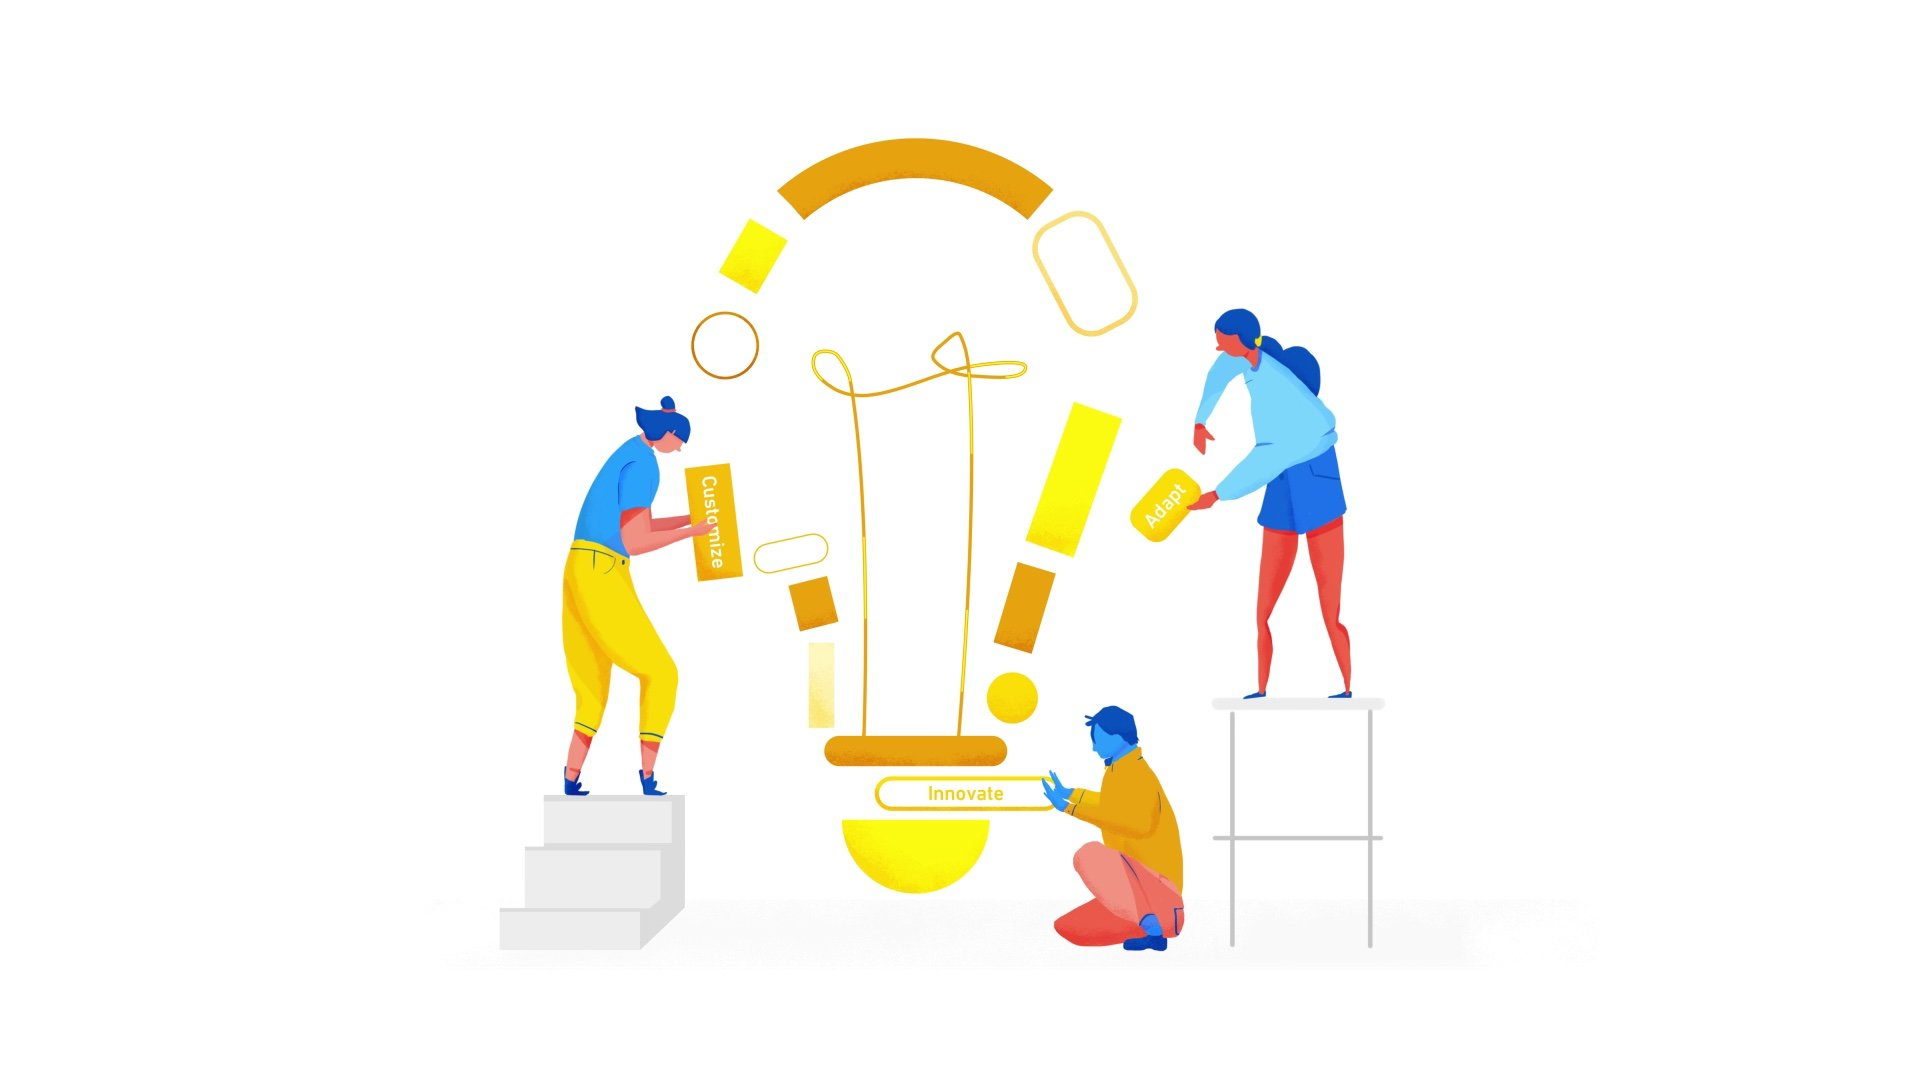 illustration for an animation of Apigee, a Google Cloud Service. It shows a group of people creating an idea together